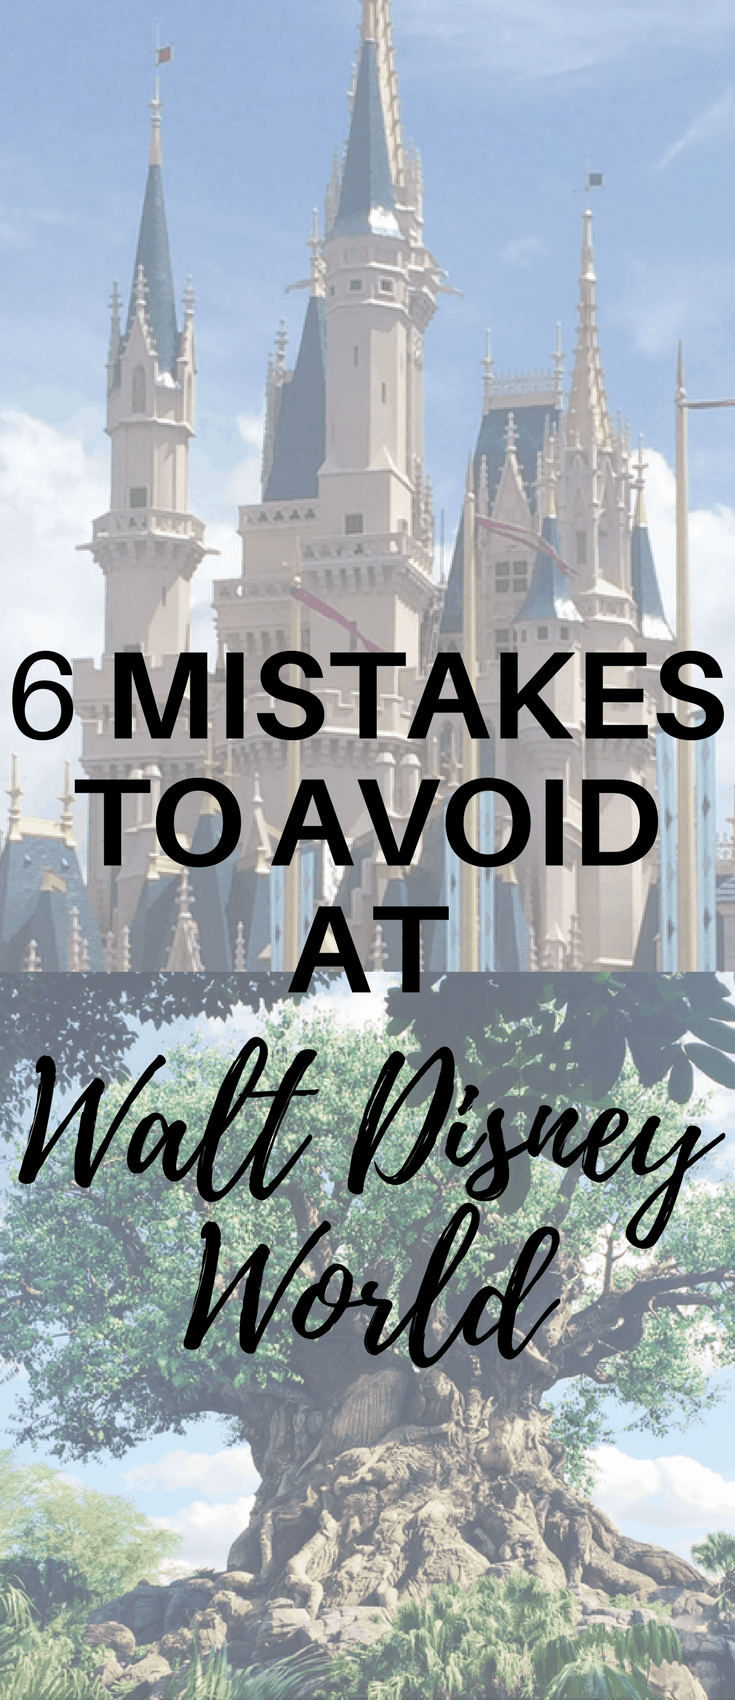 This Walt Disney World Orlando travel guide gives you the 6 mistakes you need to avoid so you can have the best Disney vacation.